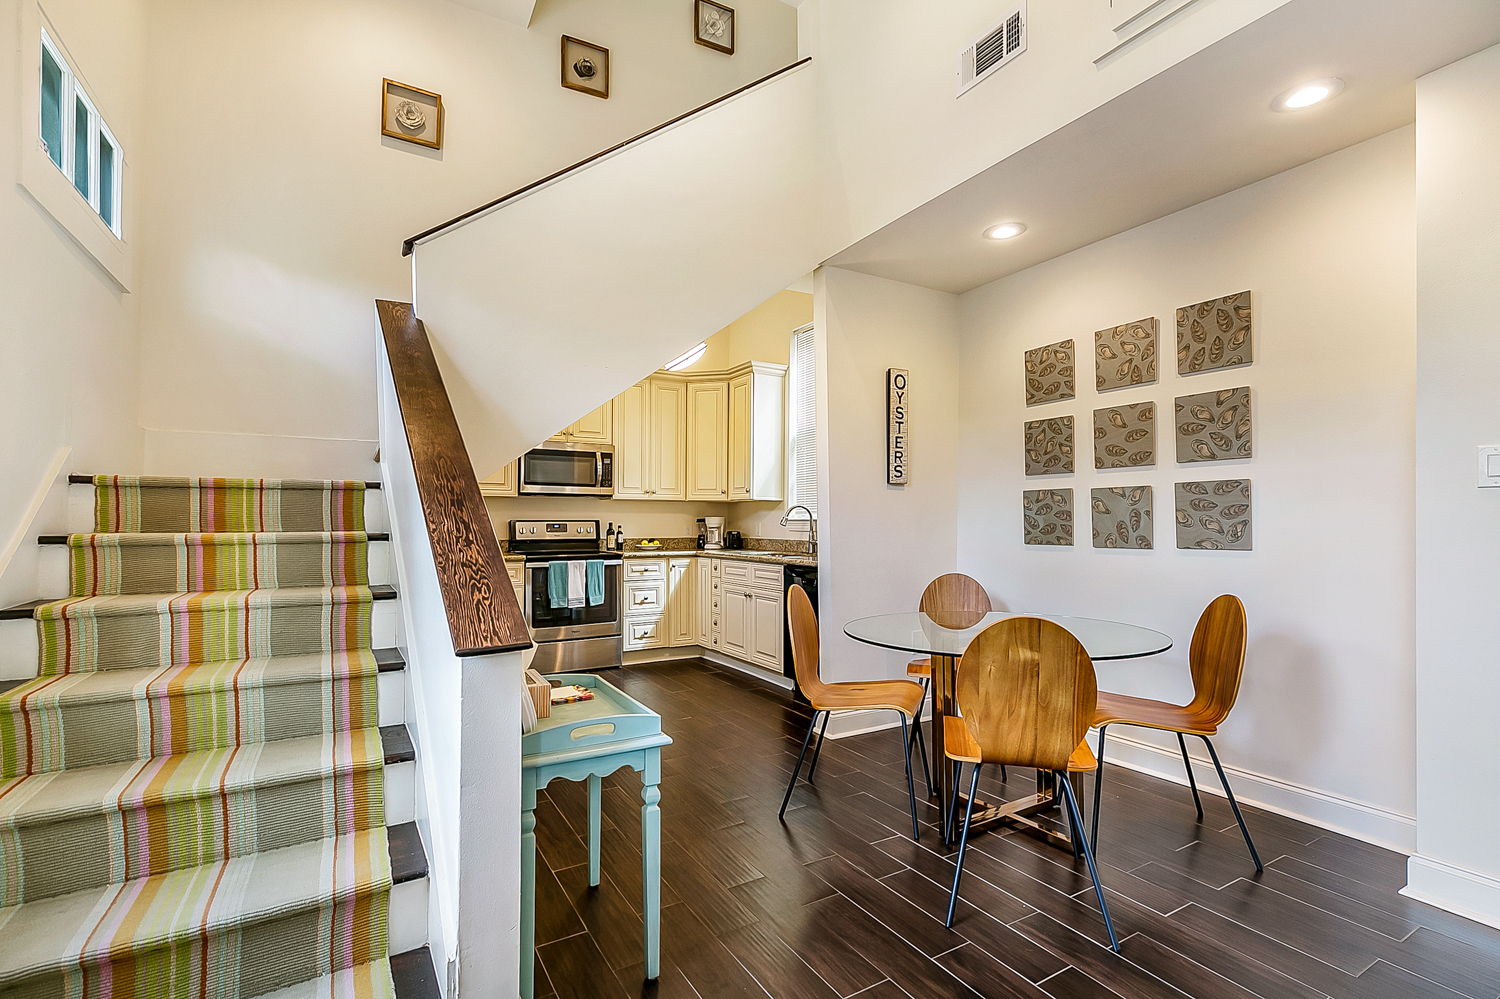 Garden District, Apartment, 1 beds, 1.0 baths, $2800 per month New Orleans Rental - devie image_0